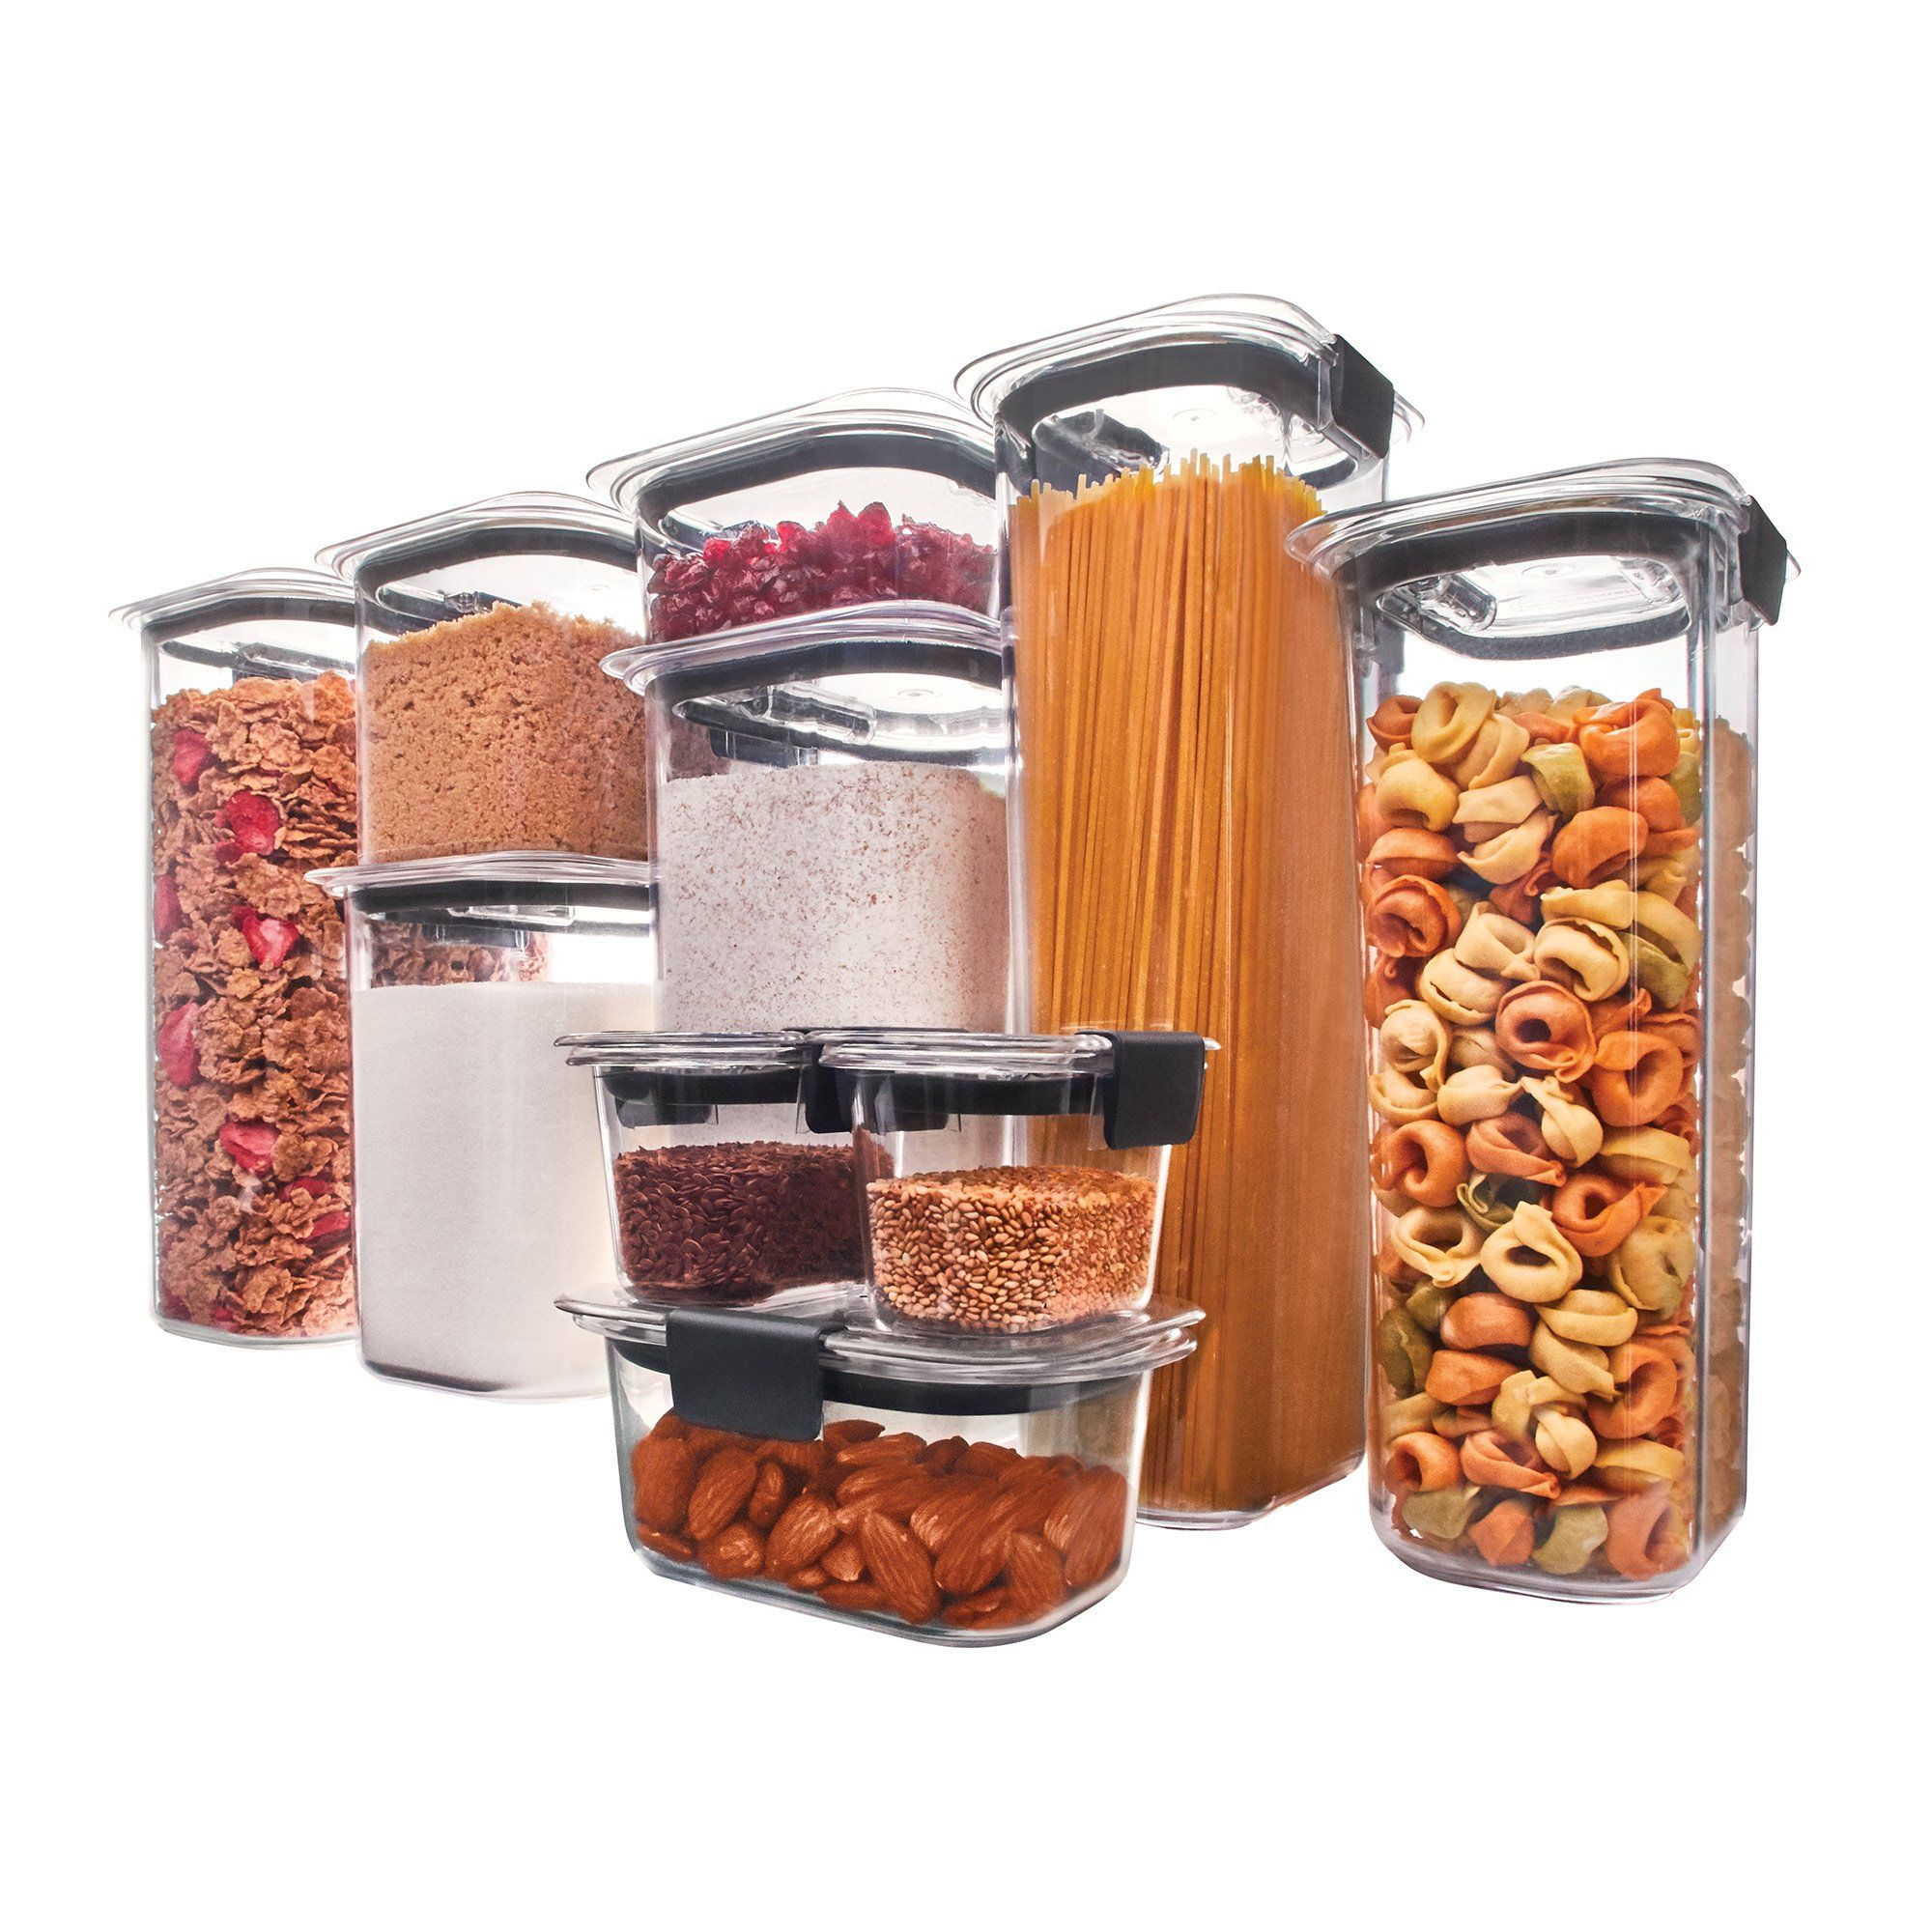 Rubbermaid Brilliance Food Storage Container Set 22 Piece Clear Prepossessing Rubbermaid Brilliance Pantry Airtight Food Storage Container Bpa Decorating Inspiration